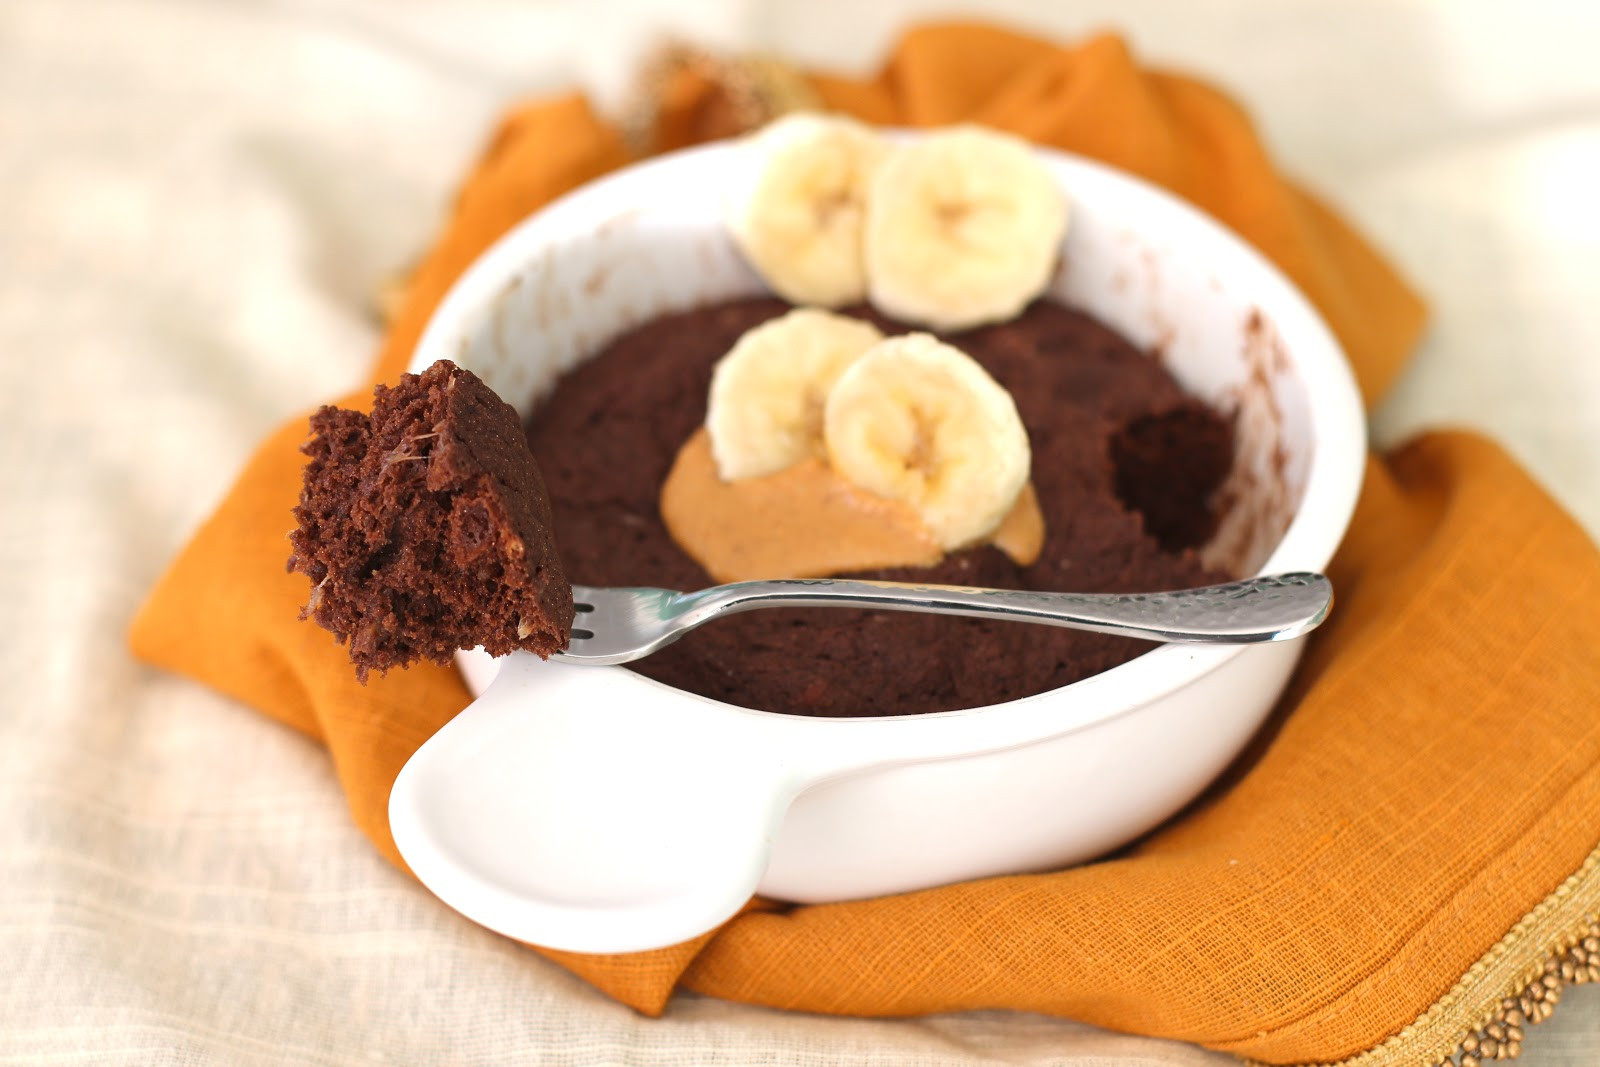 Healthy Banana Dessert  Healthy Single Serving Chocolate Peanut Butter Banana